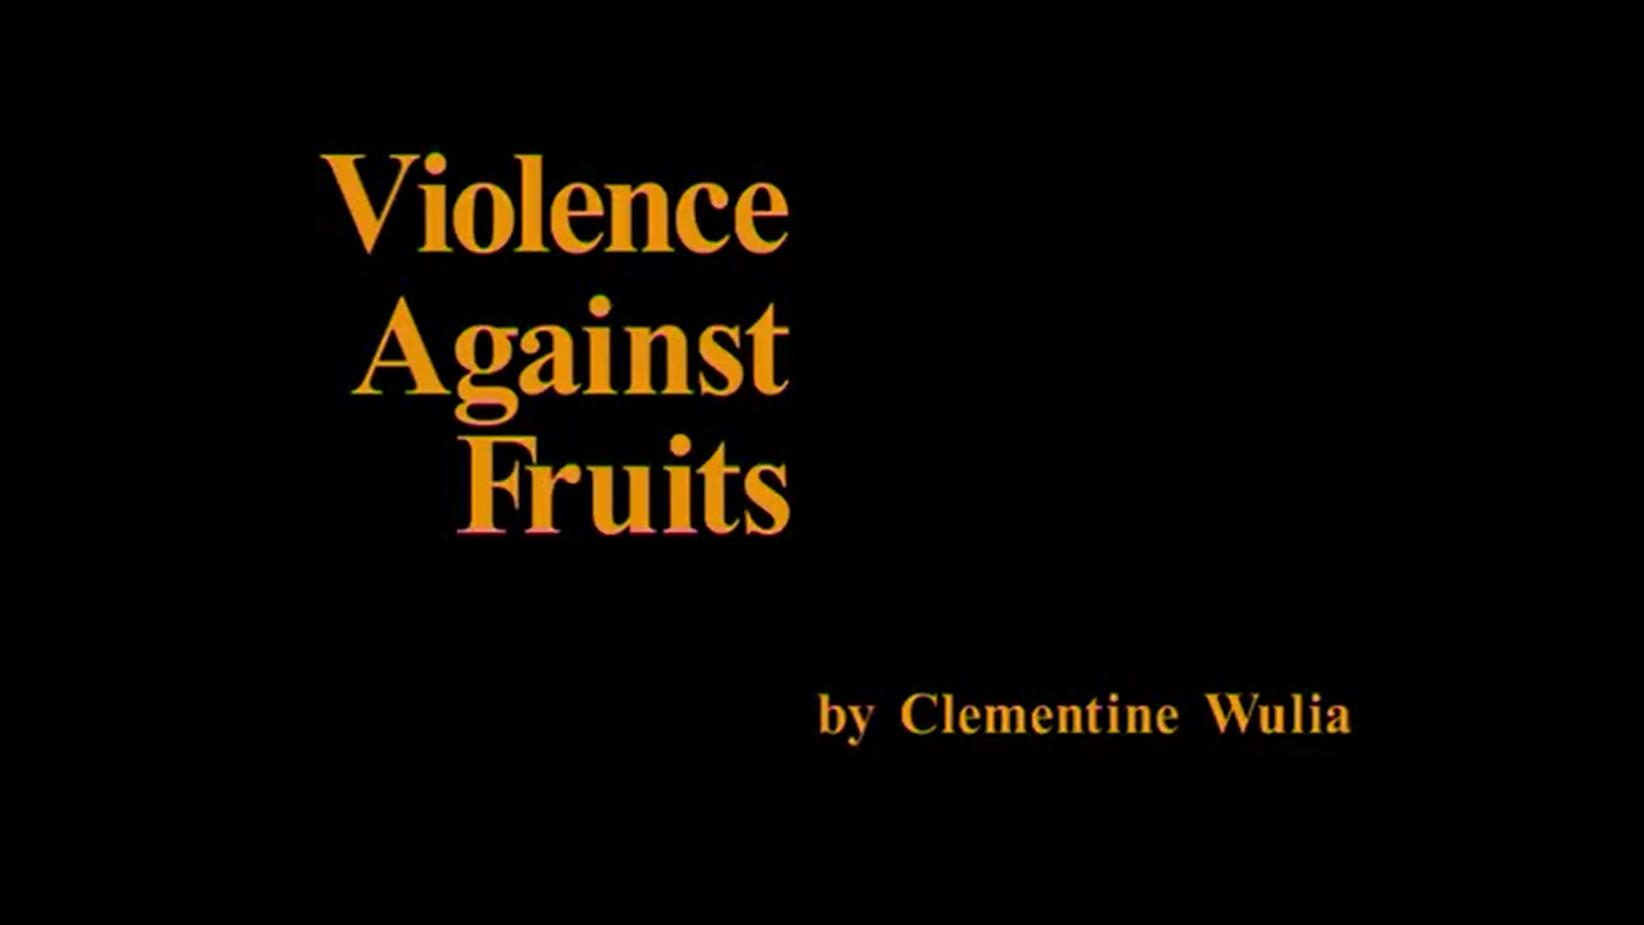 ViolenceAgainstFruits-1